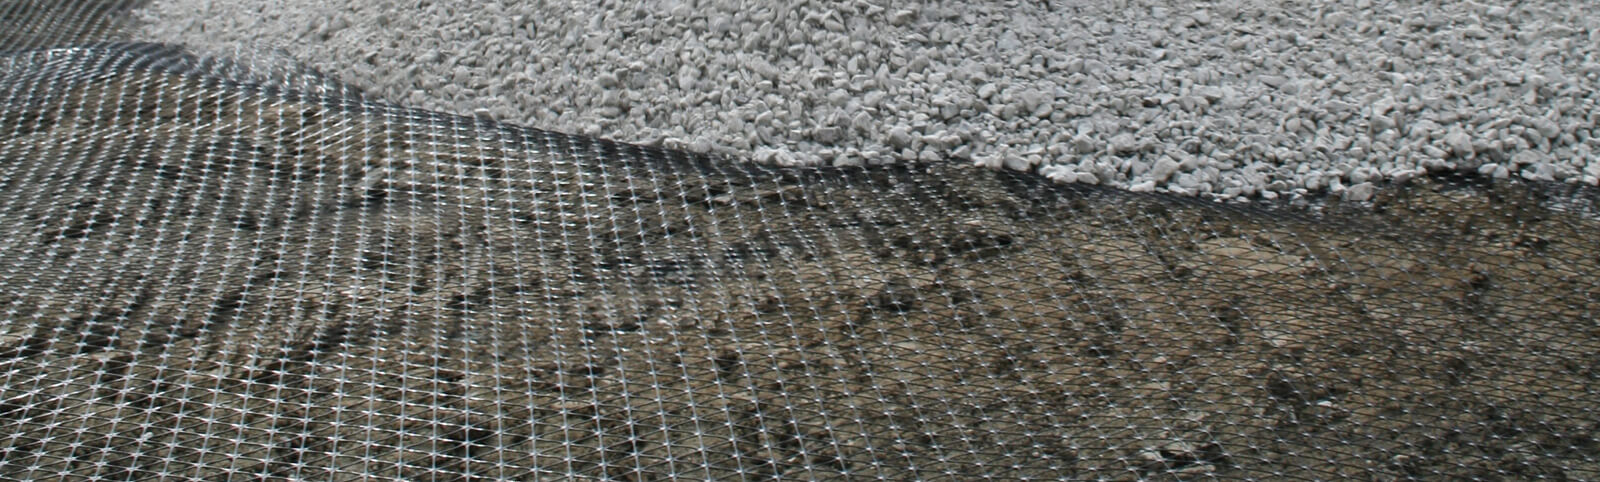 menu-Geogrilles-Geosynthetiques-Terraquavie